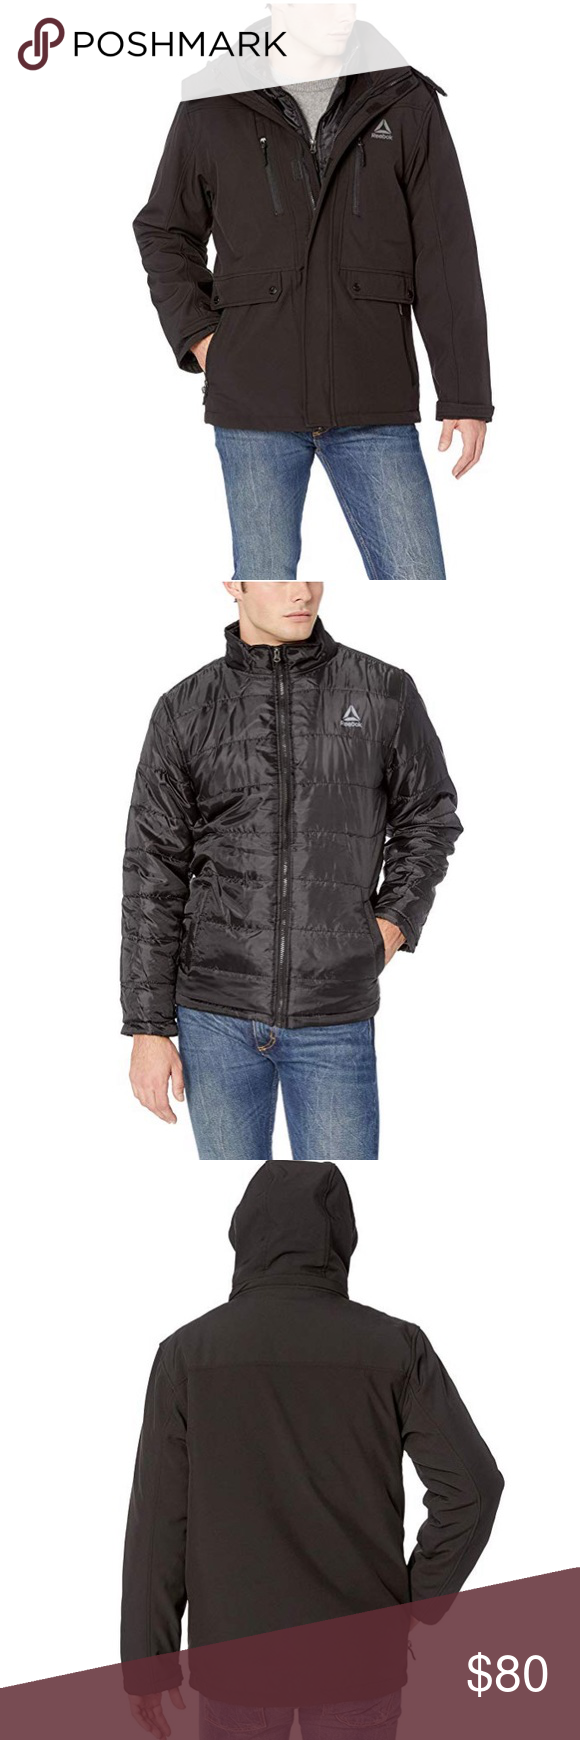 Reebok Men S Softshell Active 3 In 1 Jacket Large Outerwear Jackets Outer Jacket Jackets [ 1740 x 580 Pixel ]